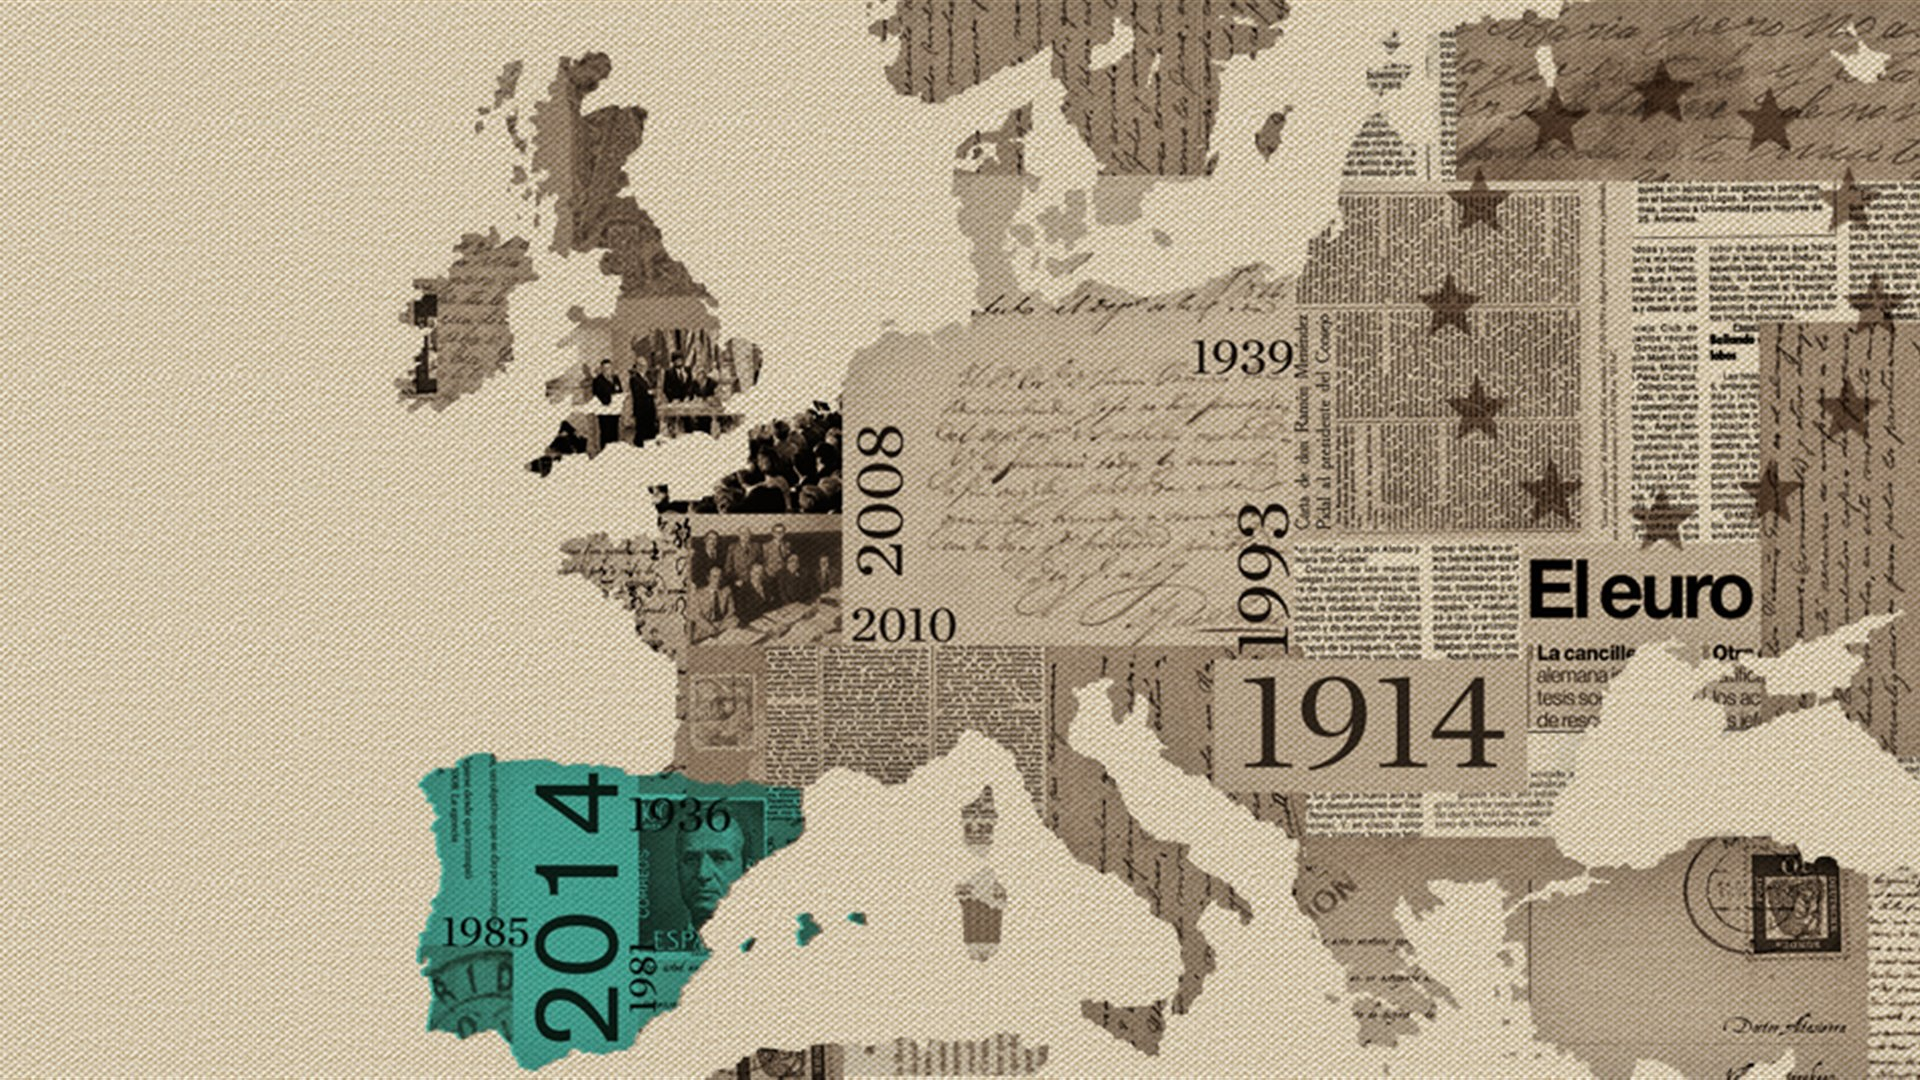 A New Historical Turning Point. Present-day Europe and Spain